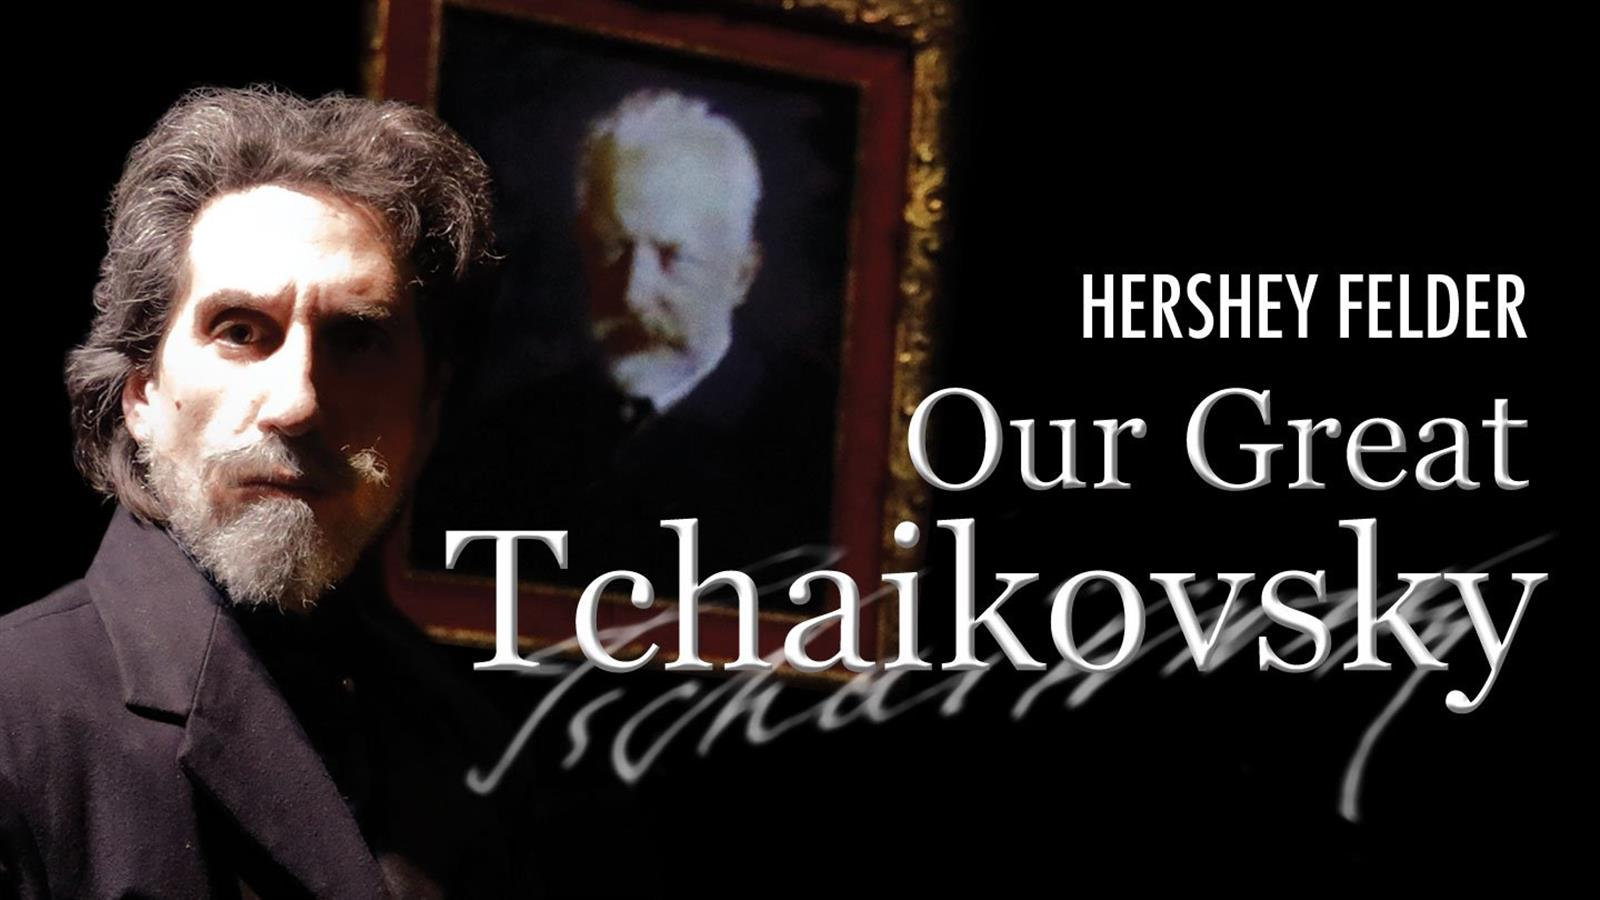 Our Great Tchaikowski tickets